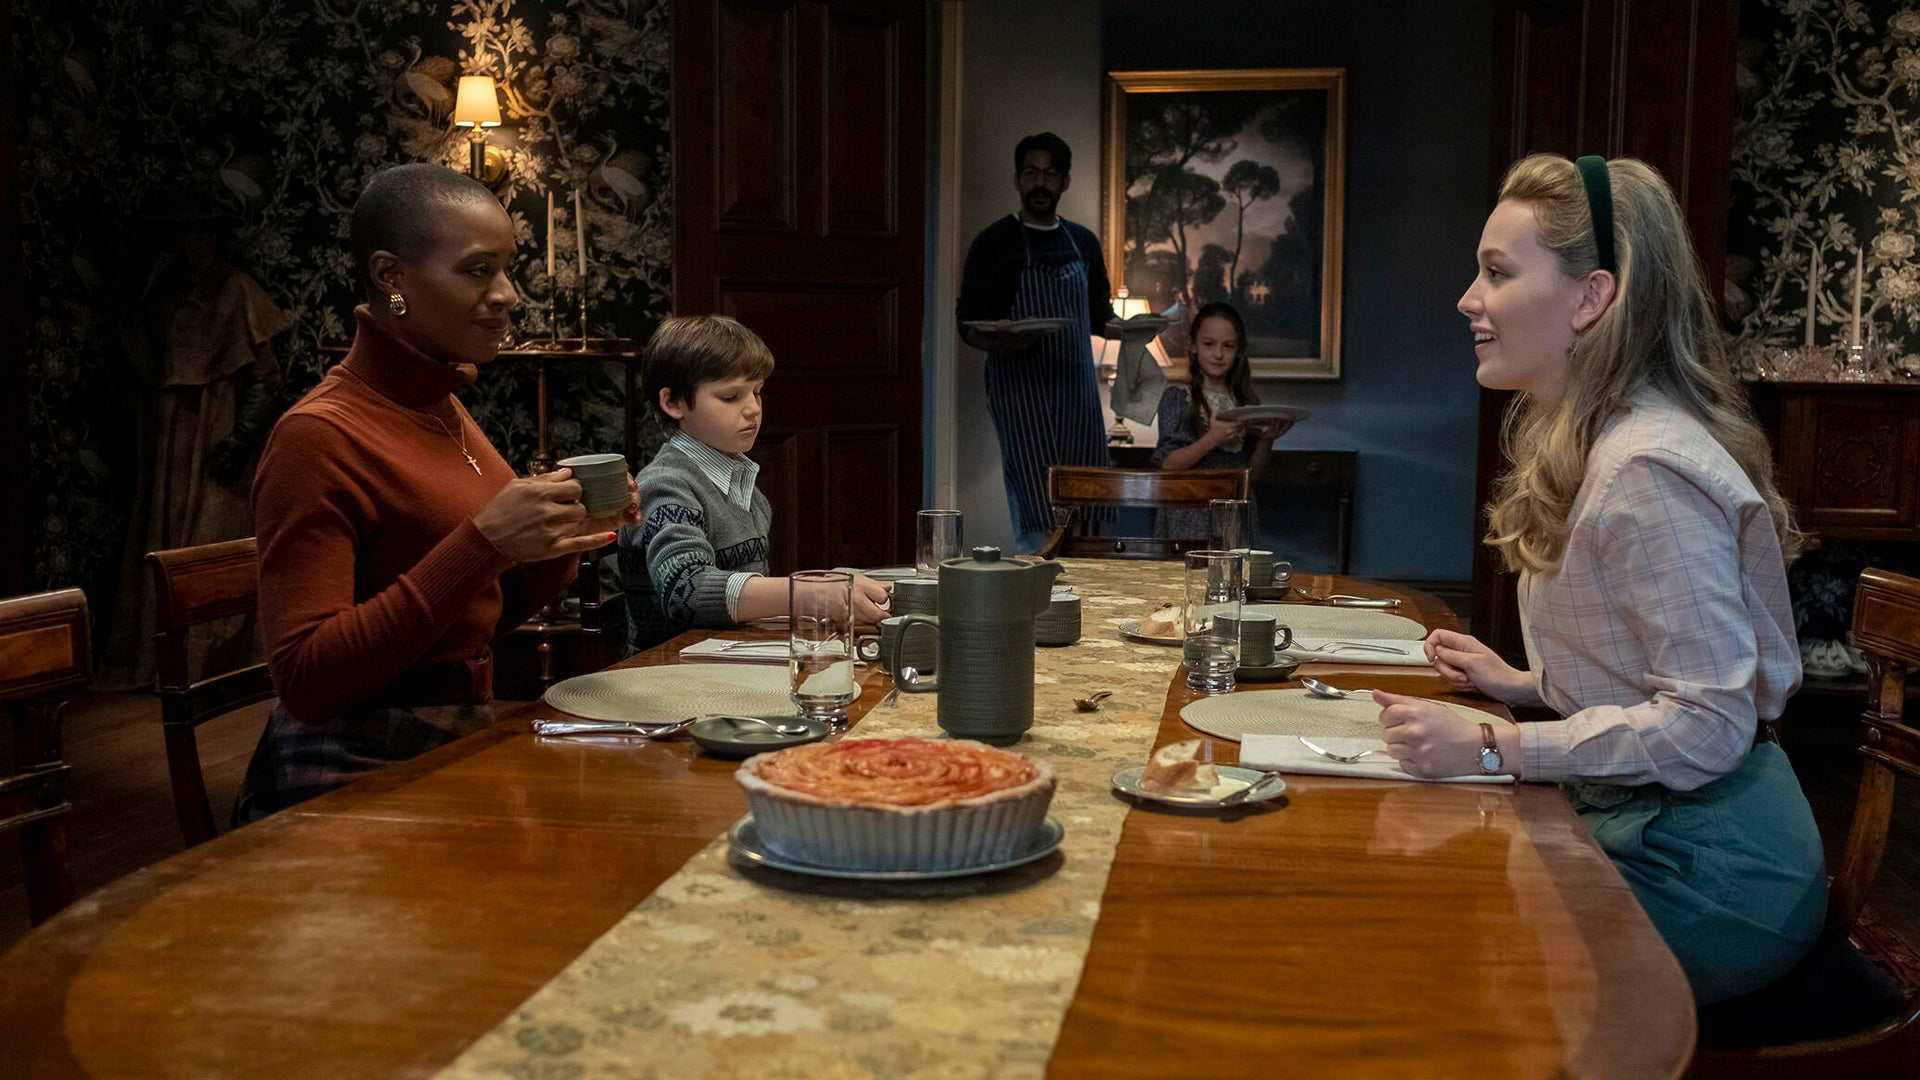 T'Nia Miller, Benjamin Ainsworth, Rahul Kohli, Amelie Smith, and Victoria Pedretti; The Haunting of Bly Manor